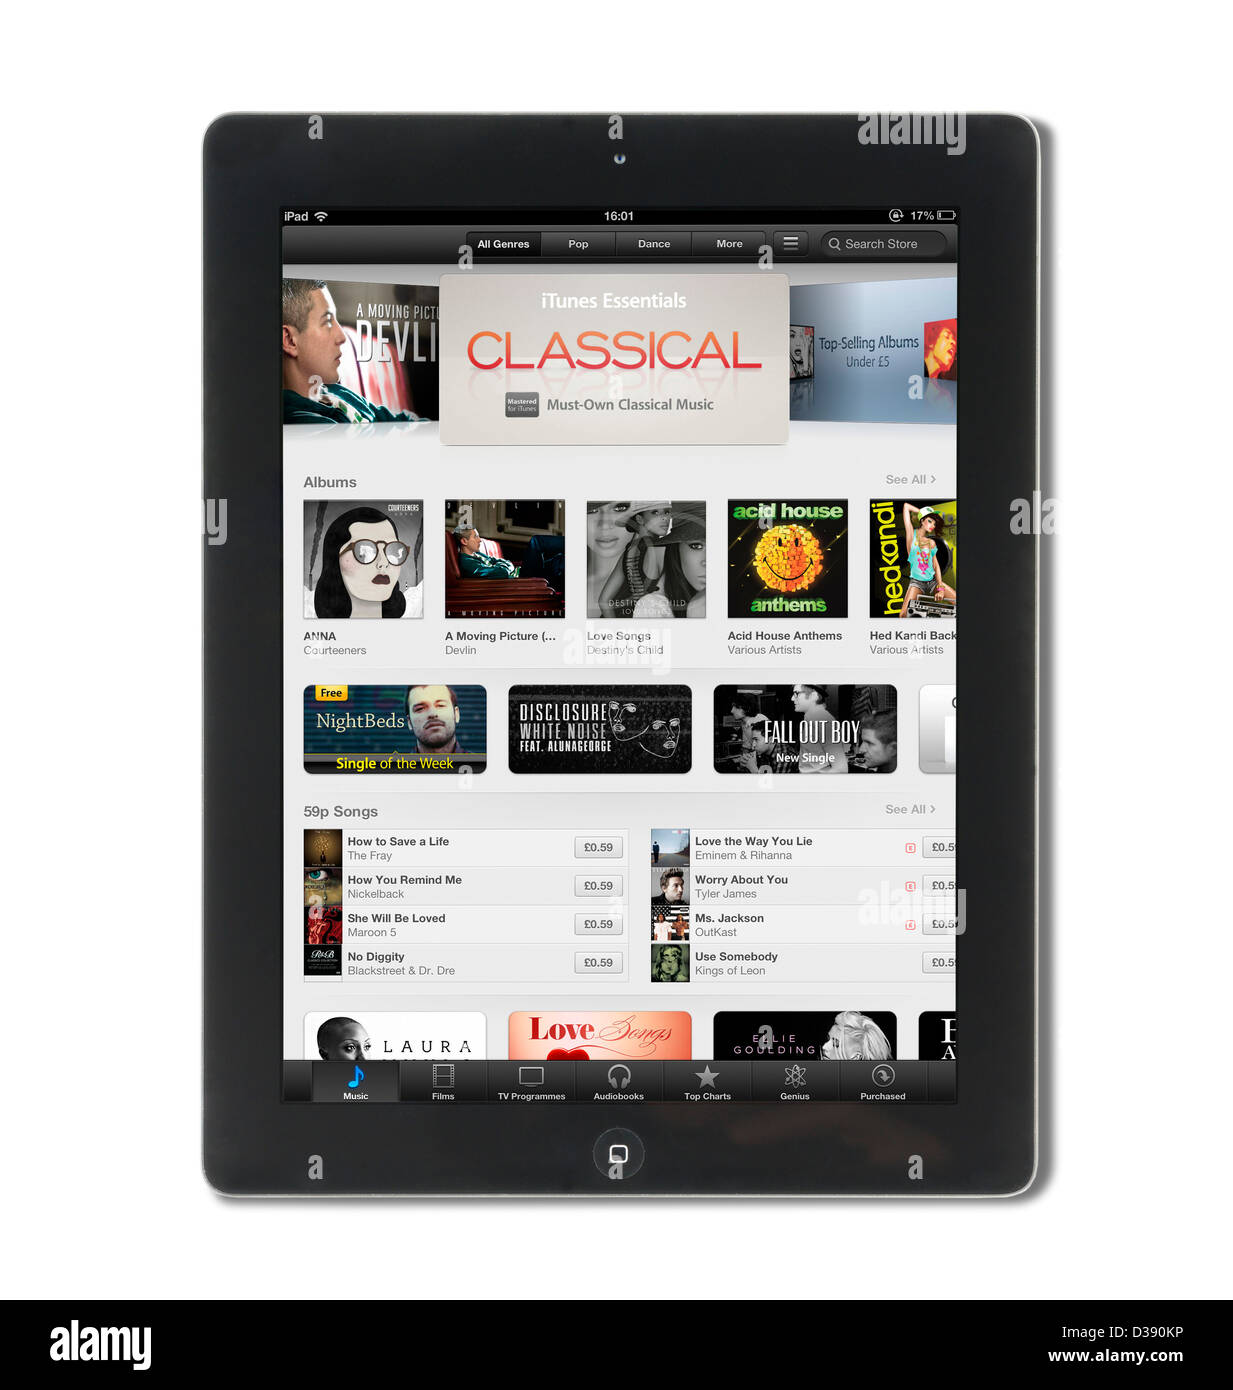 iTunes on the App Store viewed on a 4th generation Apple iPad tablet computer - Stock Image